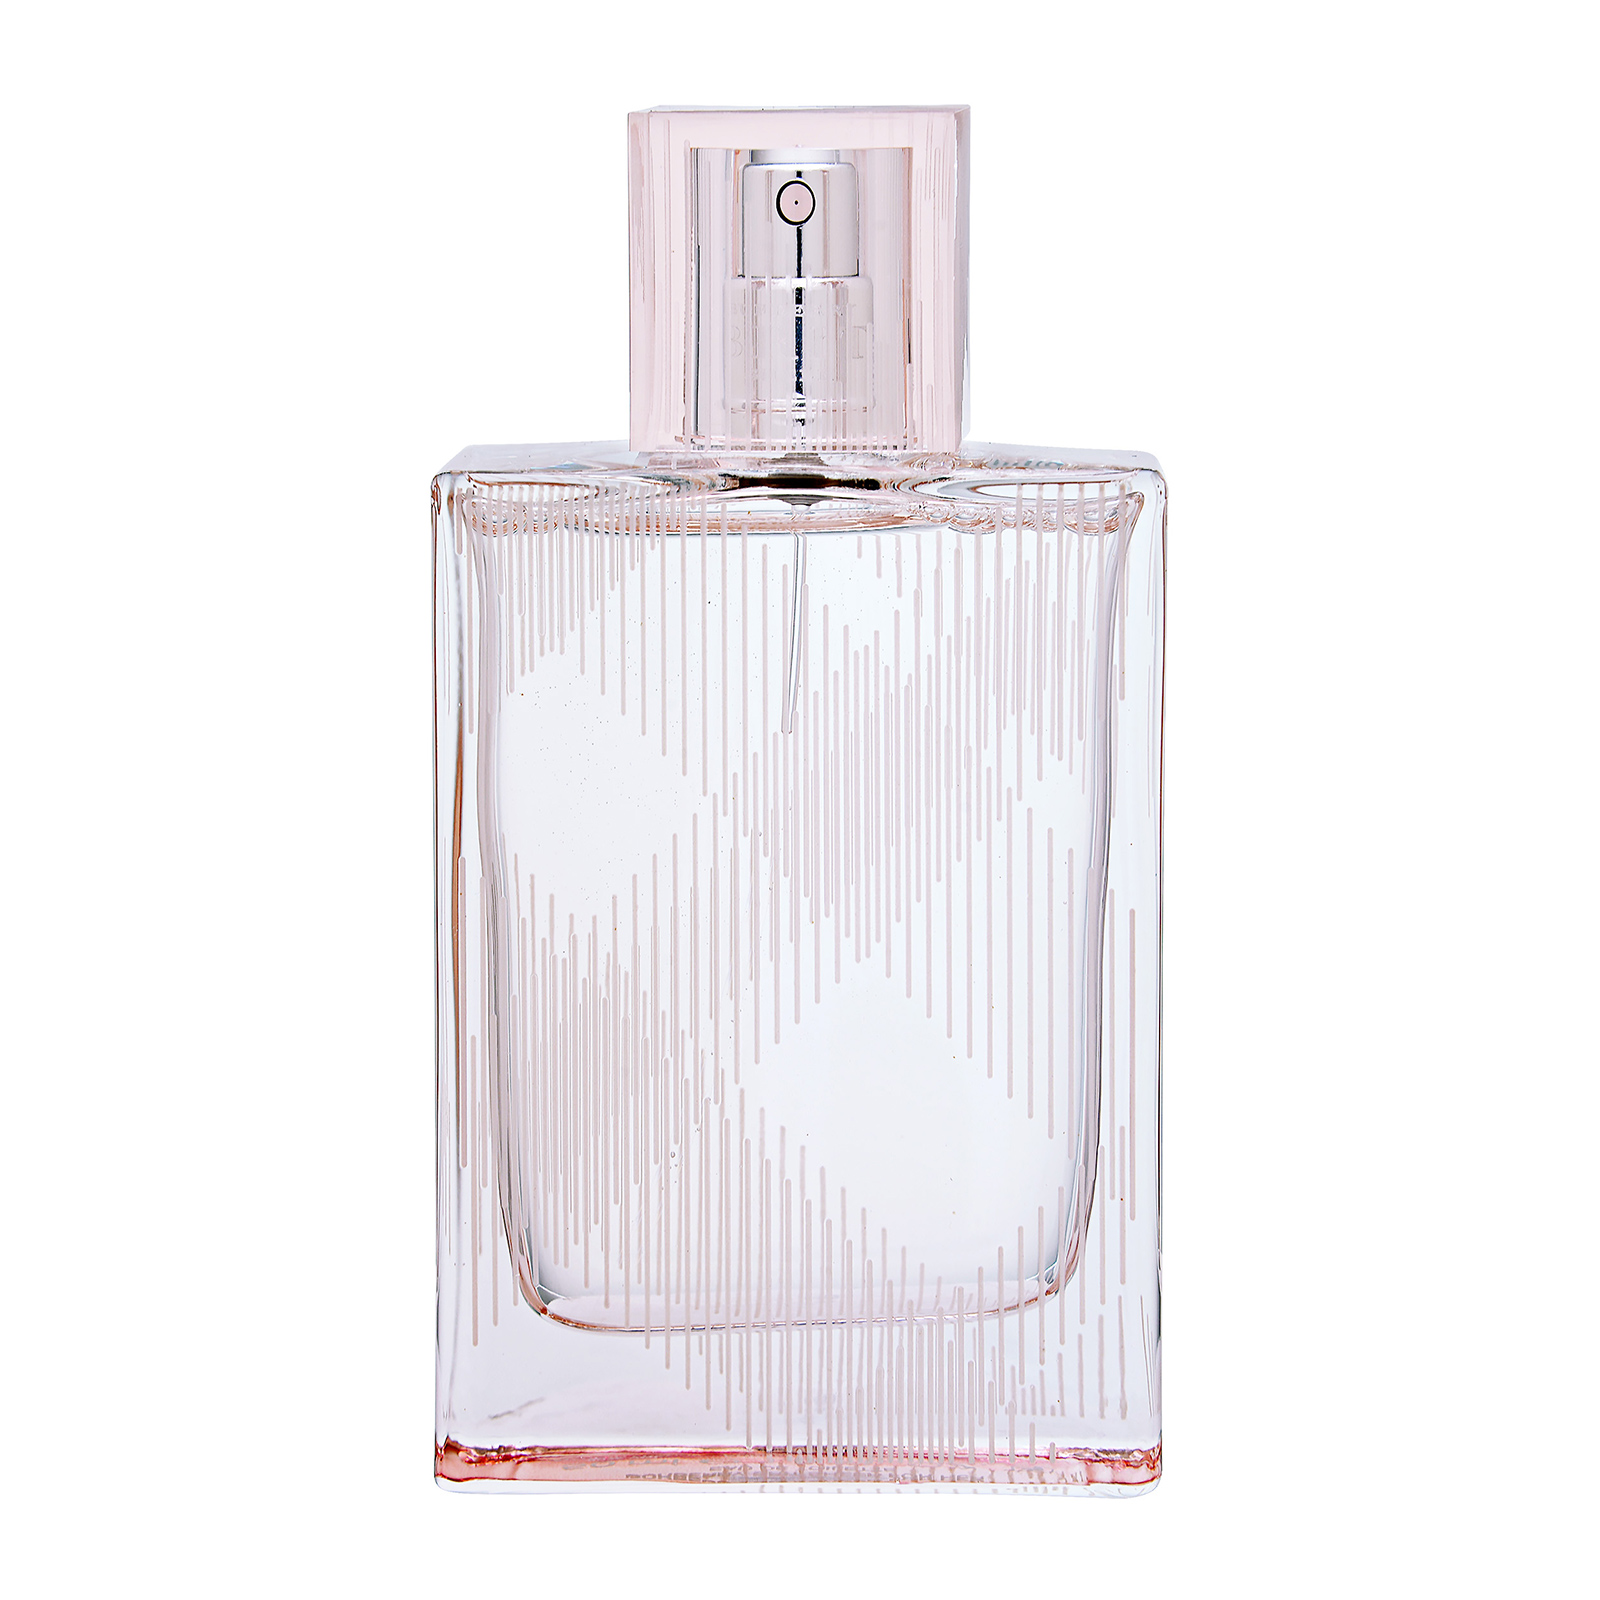 Burberry Burberry Brit Sheer EDT Spray 1.6oz, 50ml